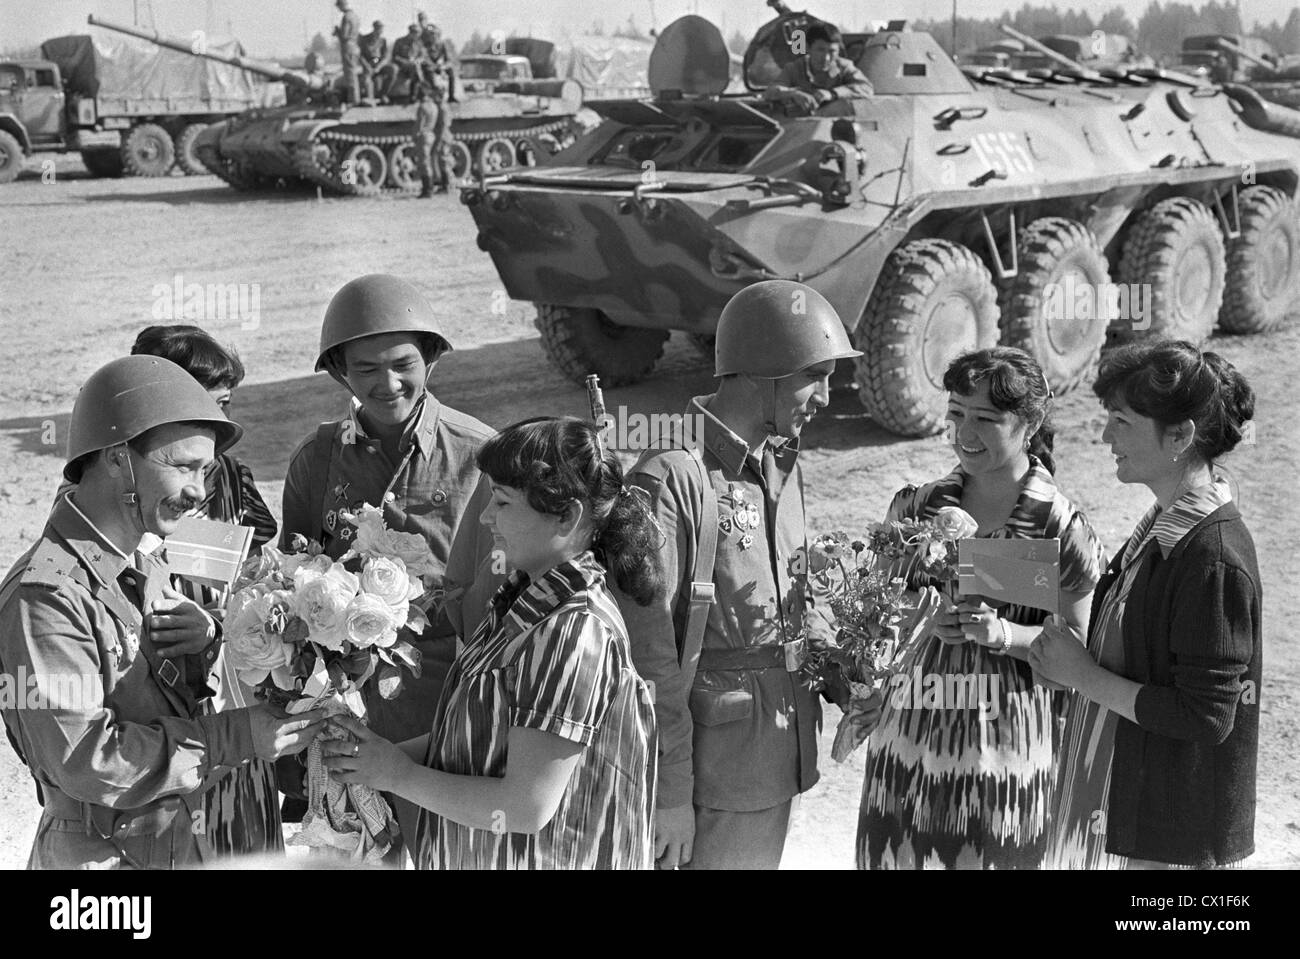 Soviet Afghanistan war - Page 6 Uzbek-ssr-termez-people-give-a-warm-welcome-to-soviet-soldiers-returning-CX1F6K